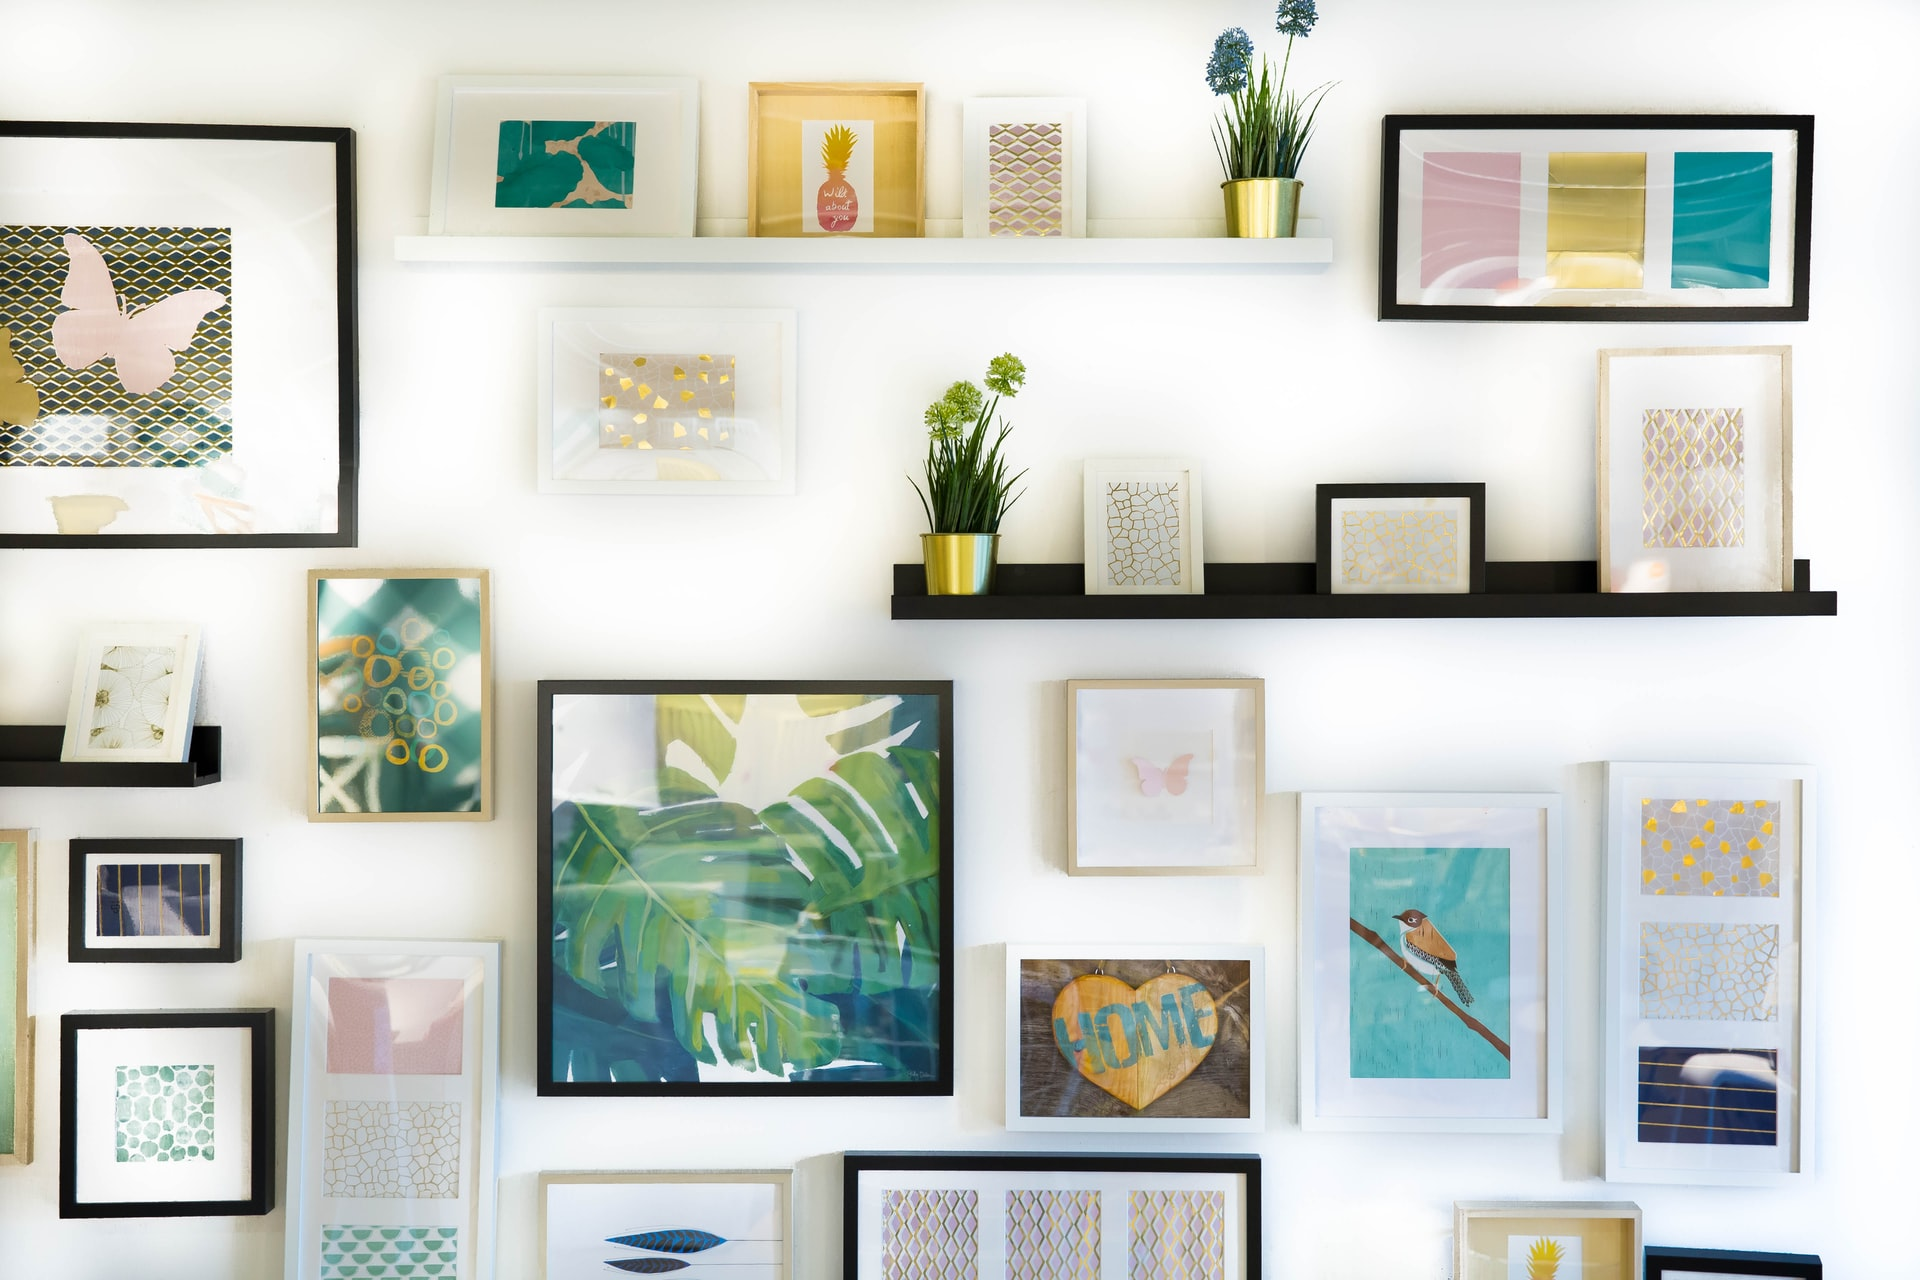 Top 10 Style Tricks to Personalize Your Space